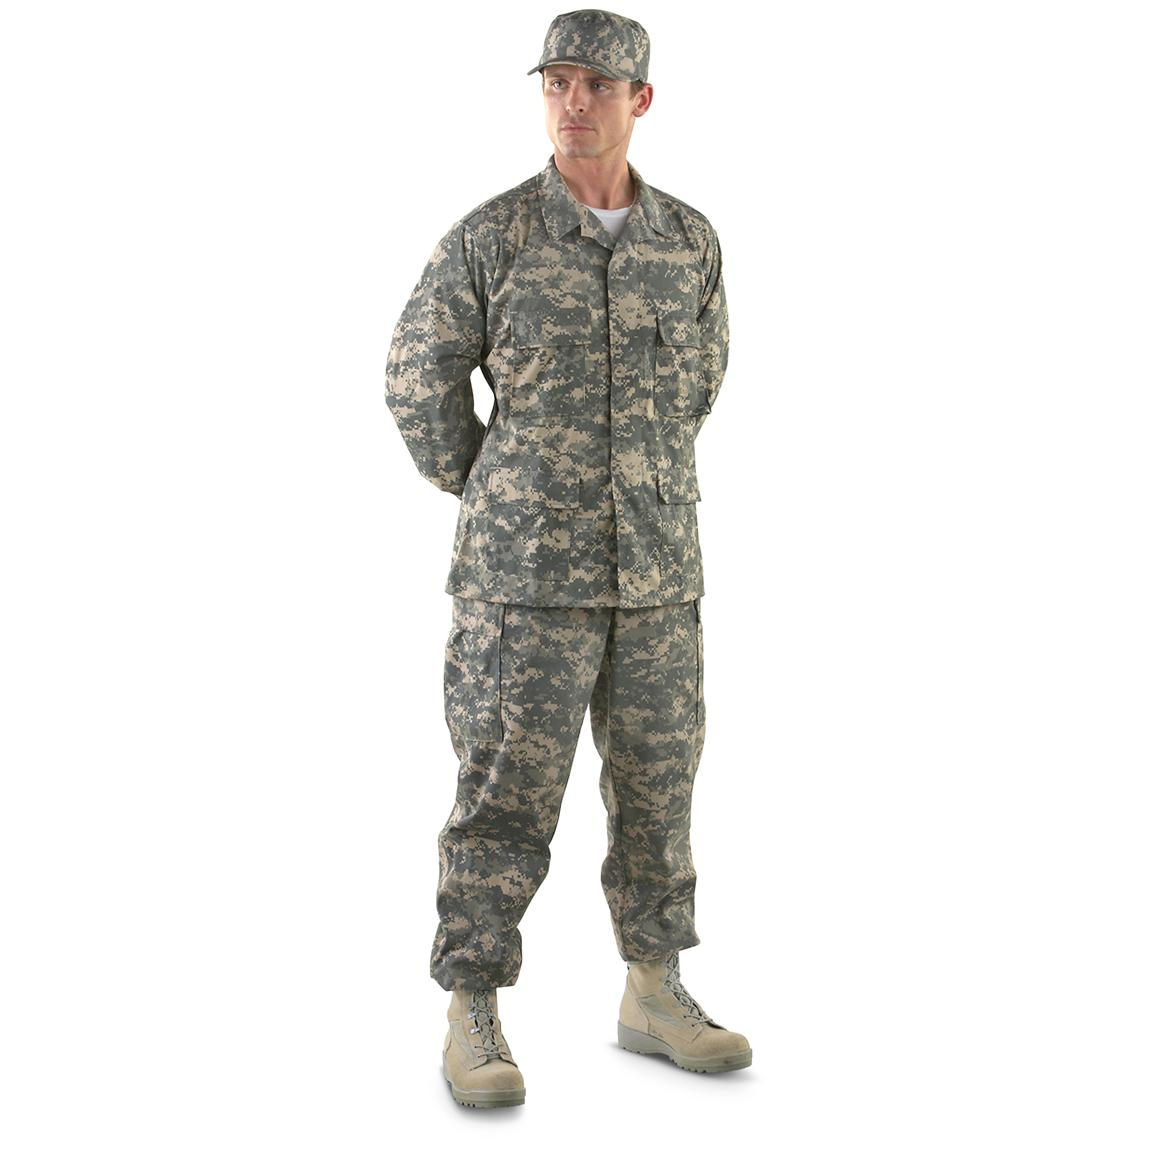 HQ ISSUE™ Military-style BDU Clothing, Army Digital